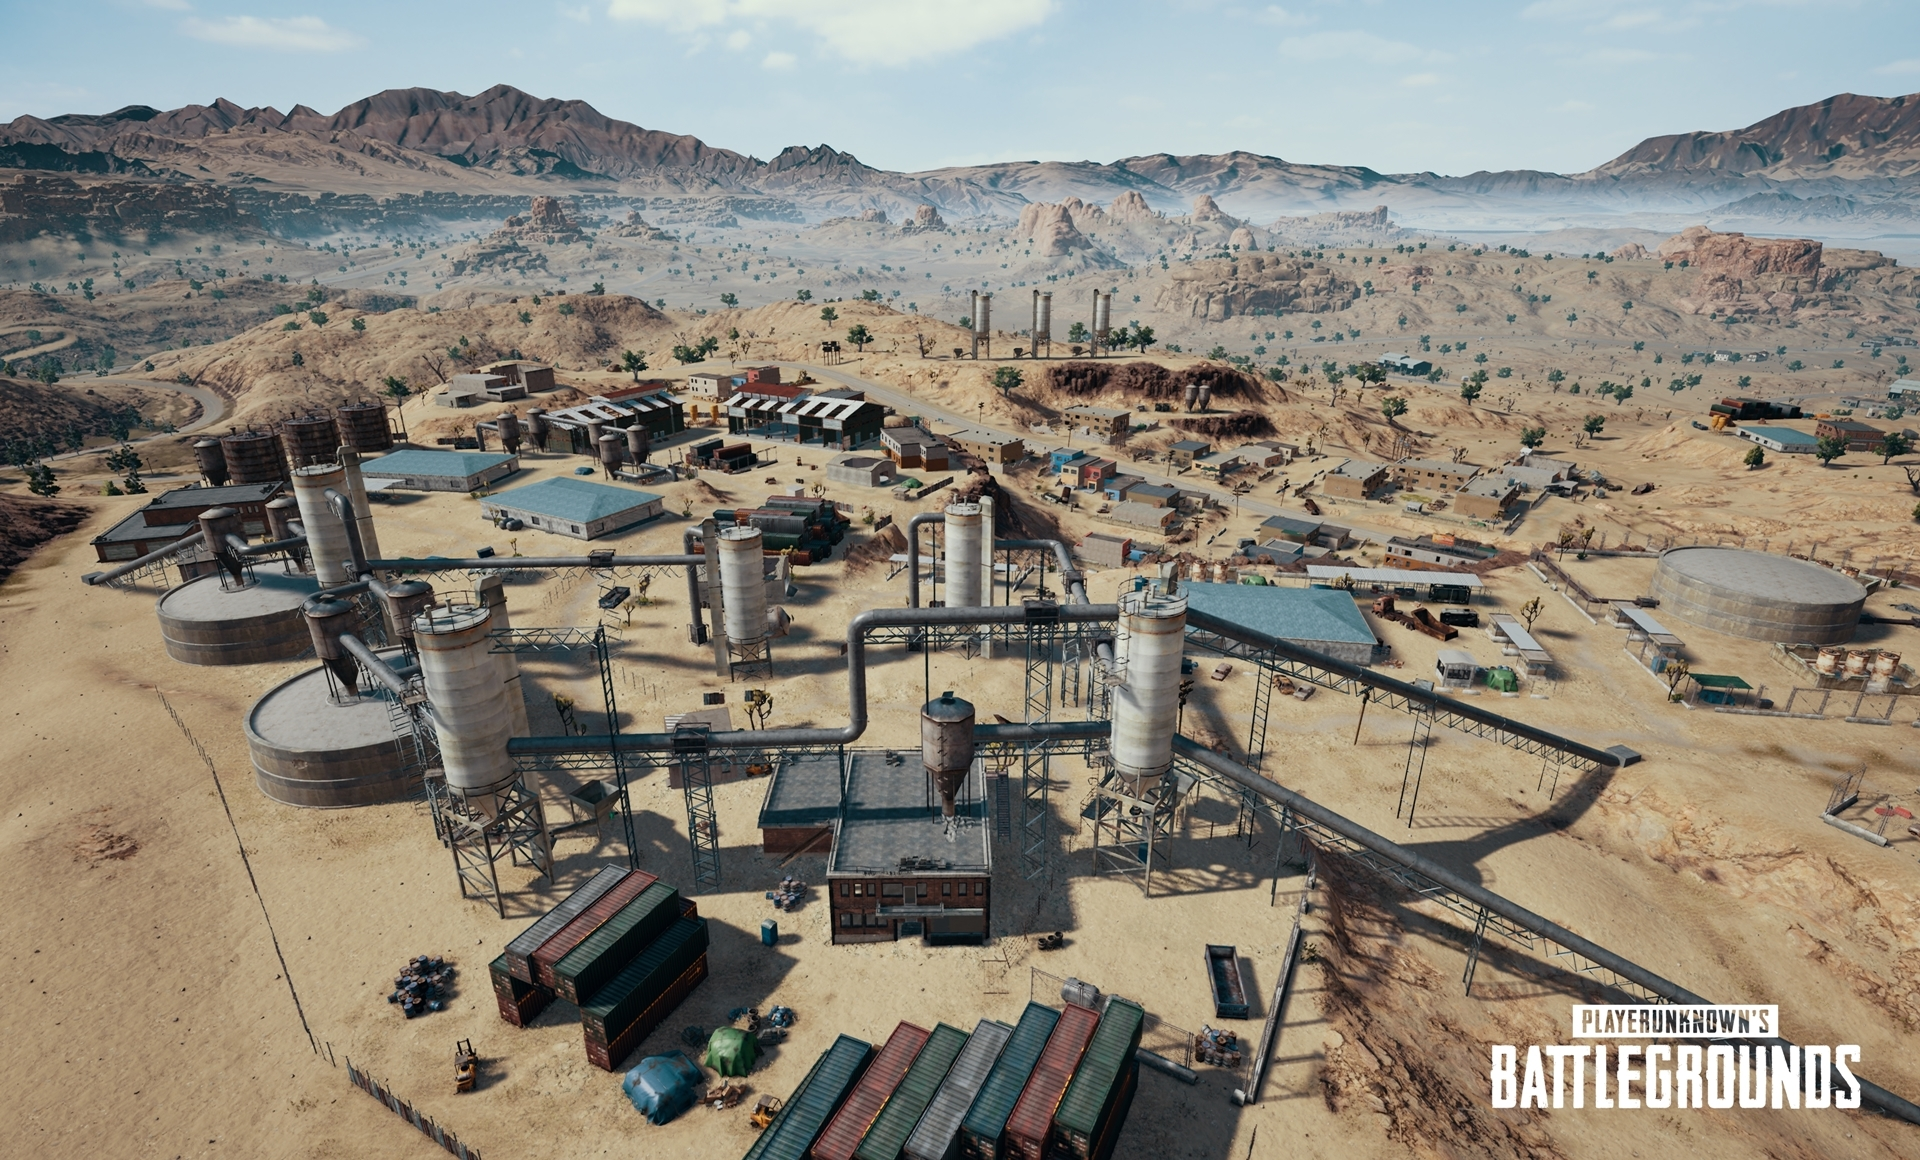 Playerunknown's Battlegrounds exiting Early Access on December 20th